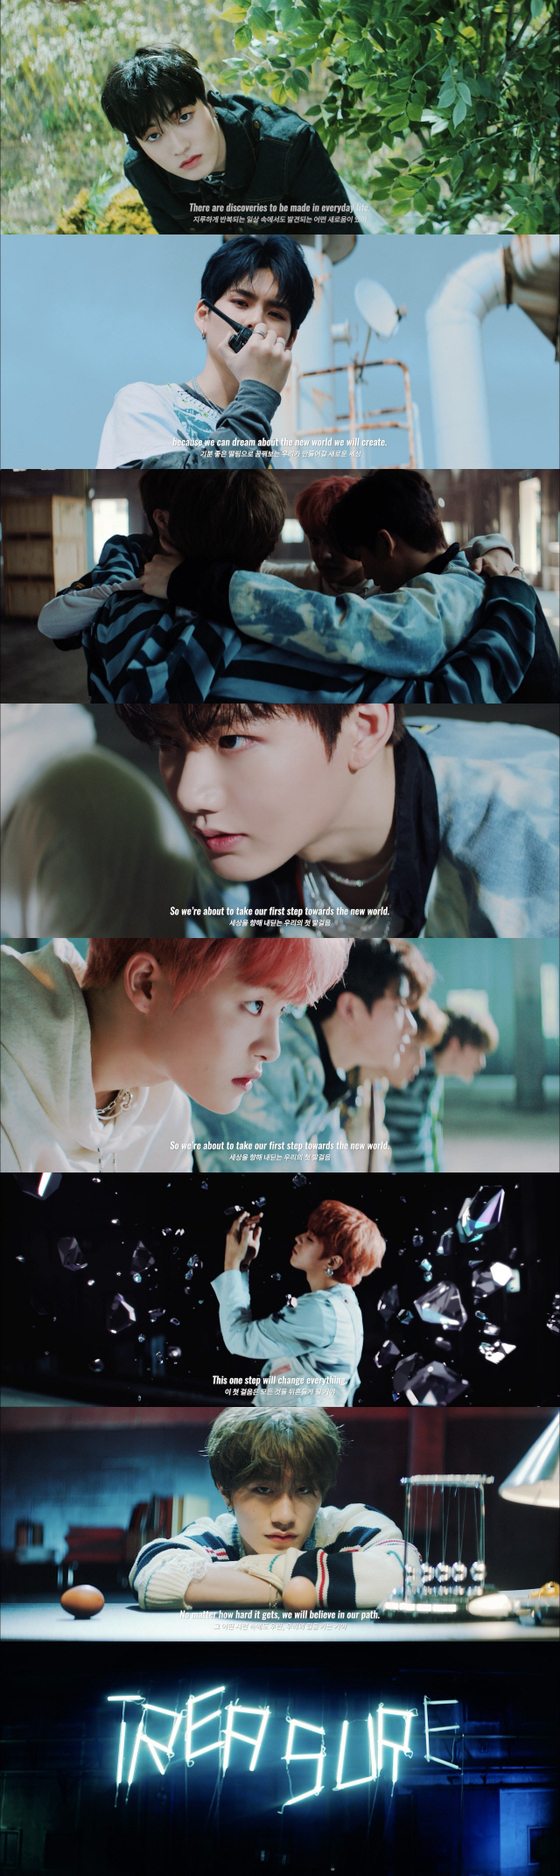 Scenes from a promotional video for Treasure. [YG ENTERTAINMENT]